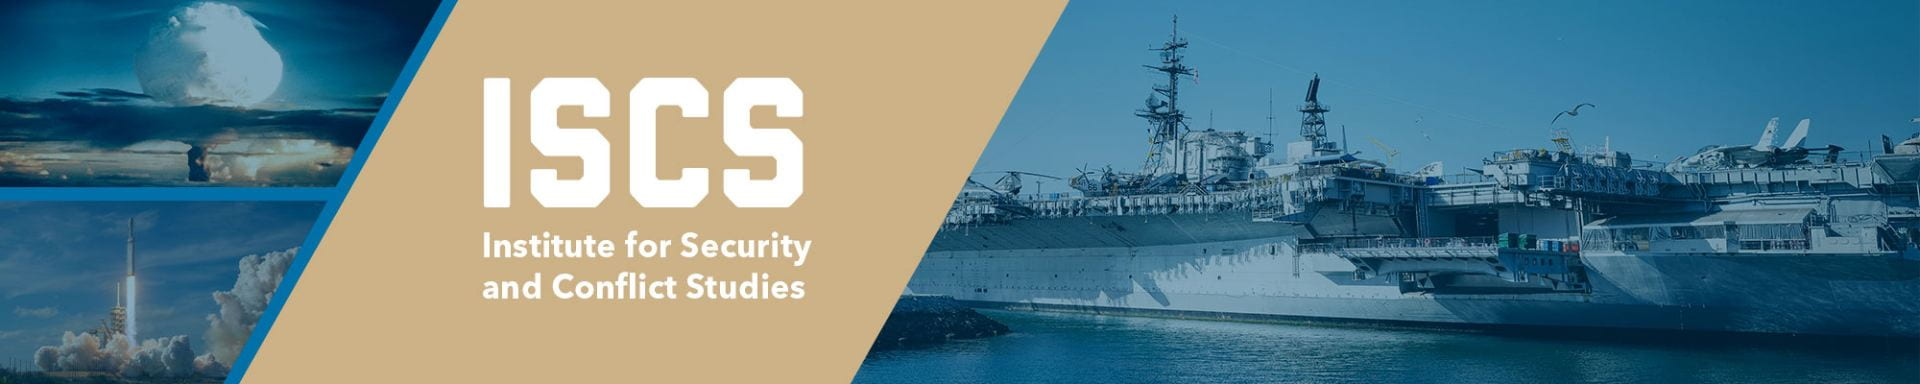 ISCS: Institute for Security and Conflict Studies with images of an aircraft carrier, hydrogen bomb explosion and space-x rocket launch